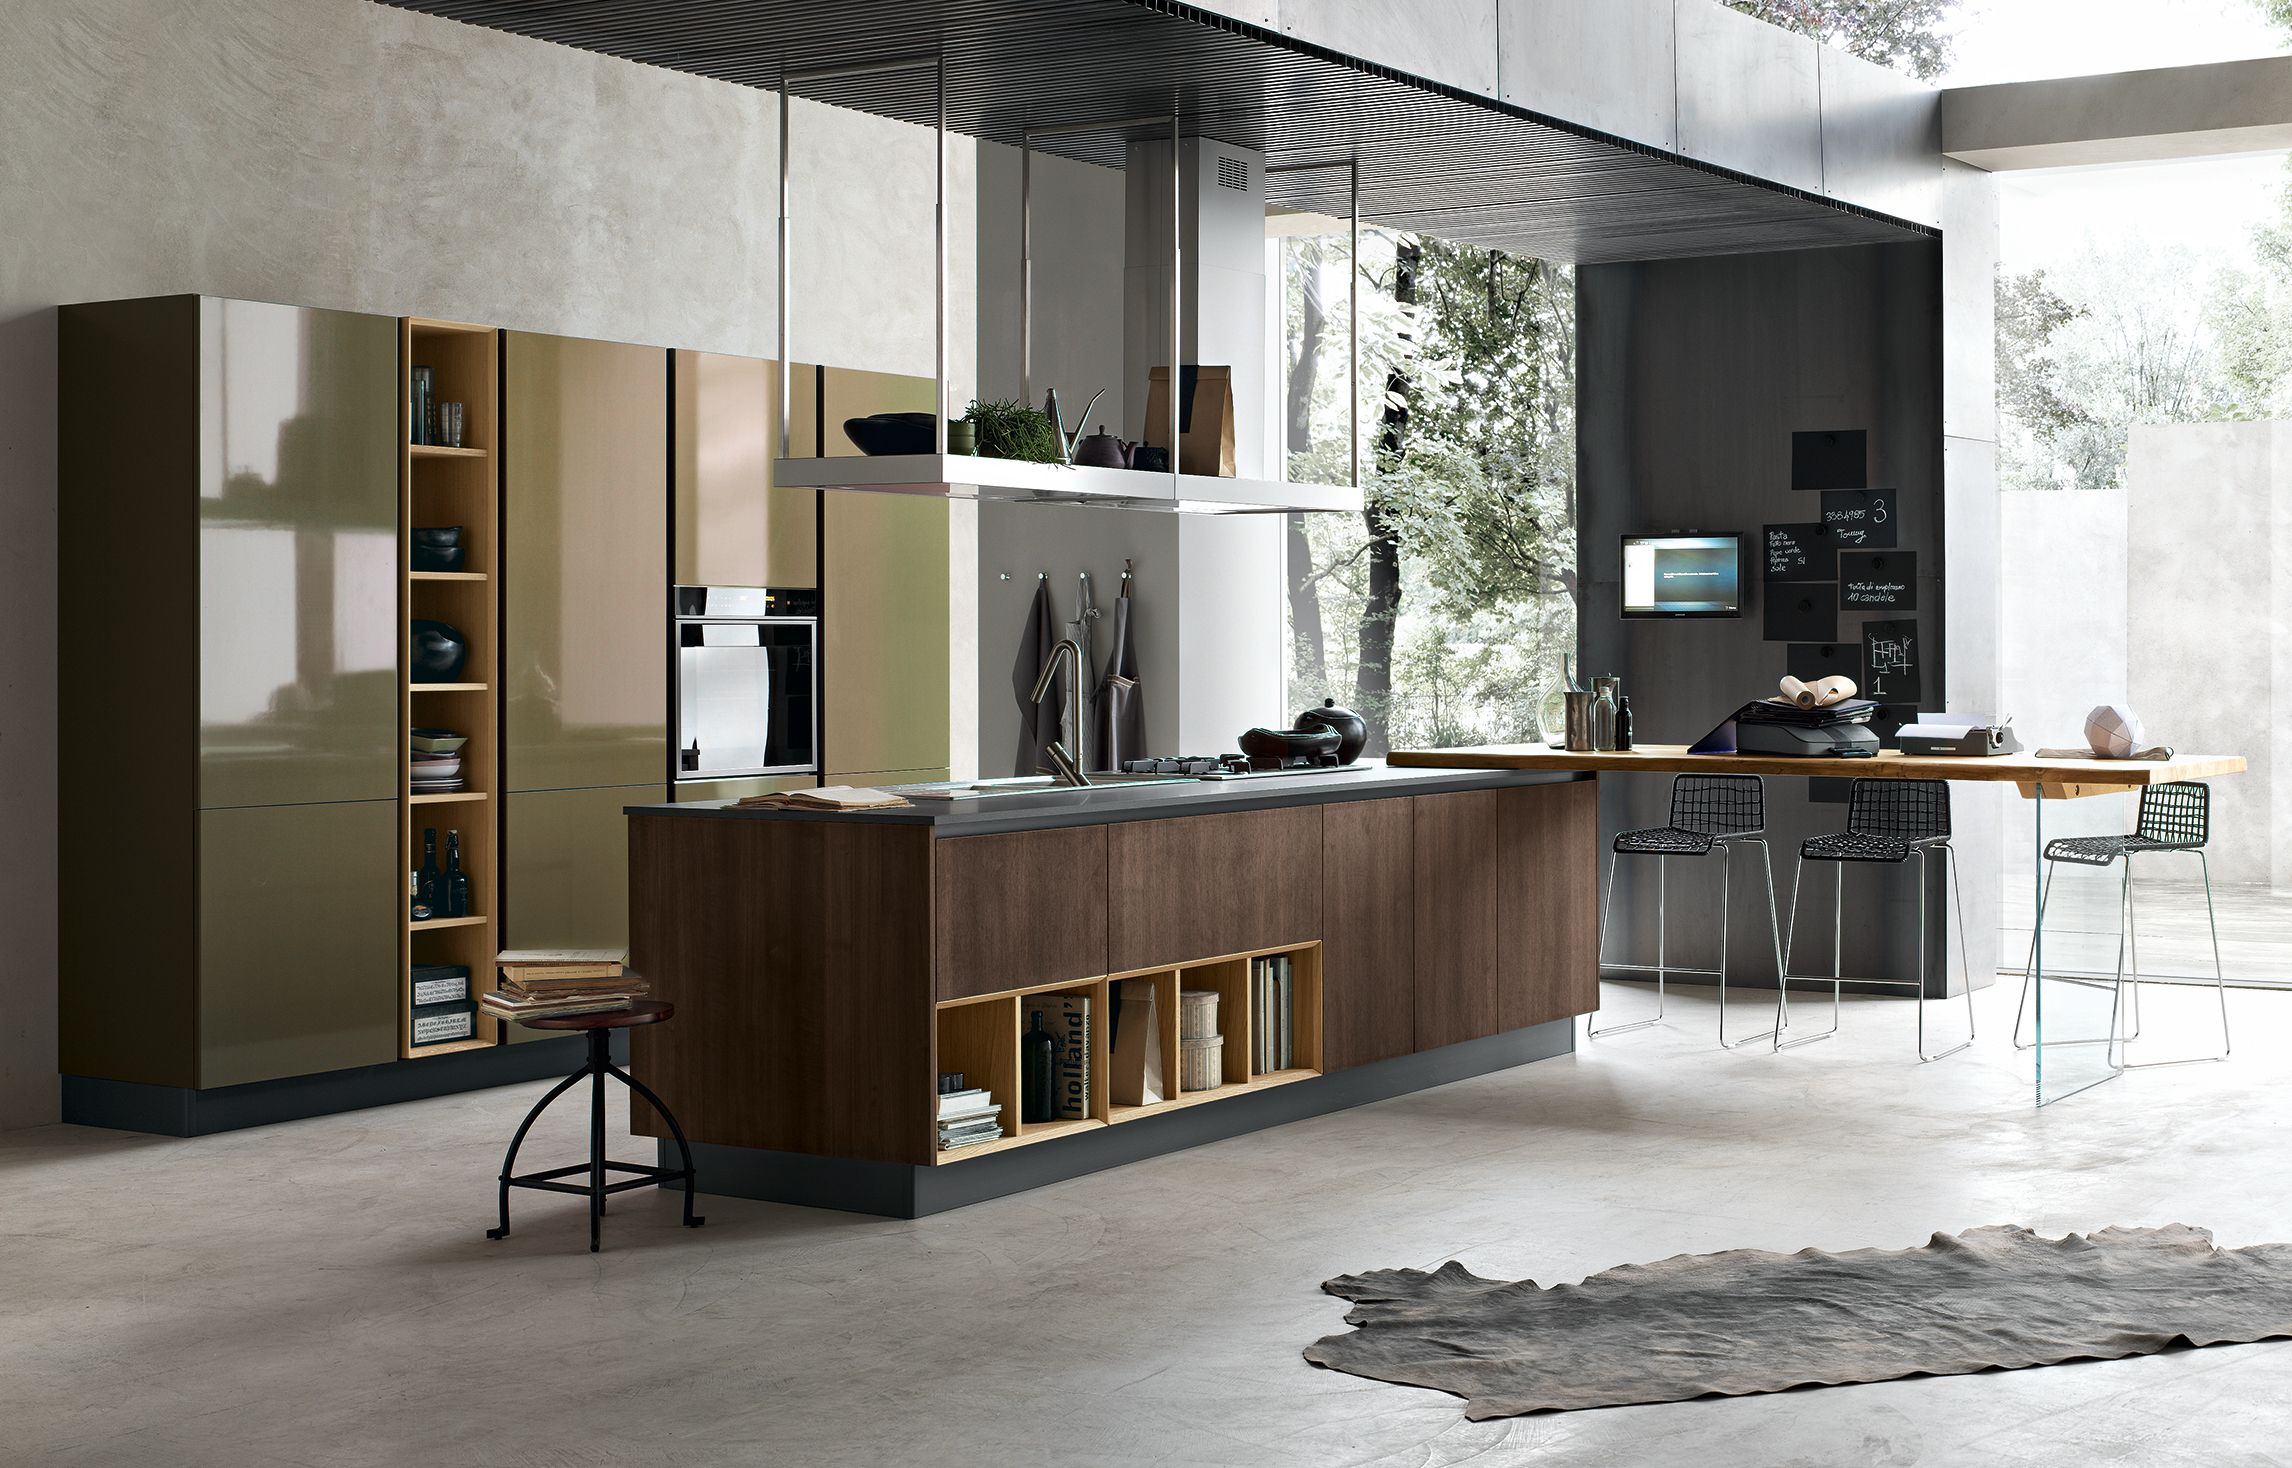 Kitchens | Stosa Cucine | MAYA/ eurosalon Podgorica | Kitchen ...